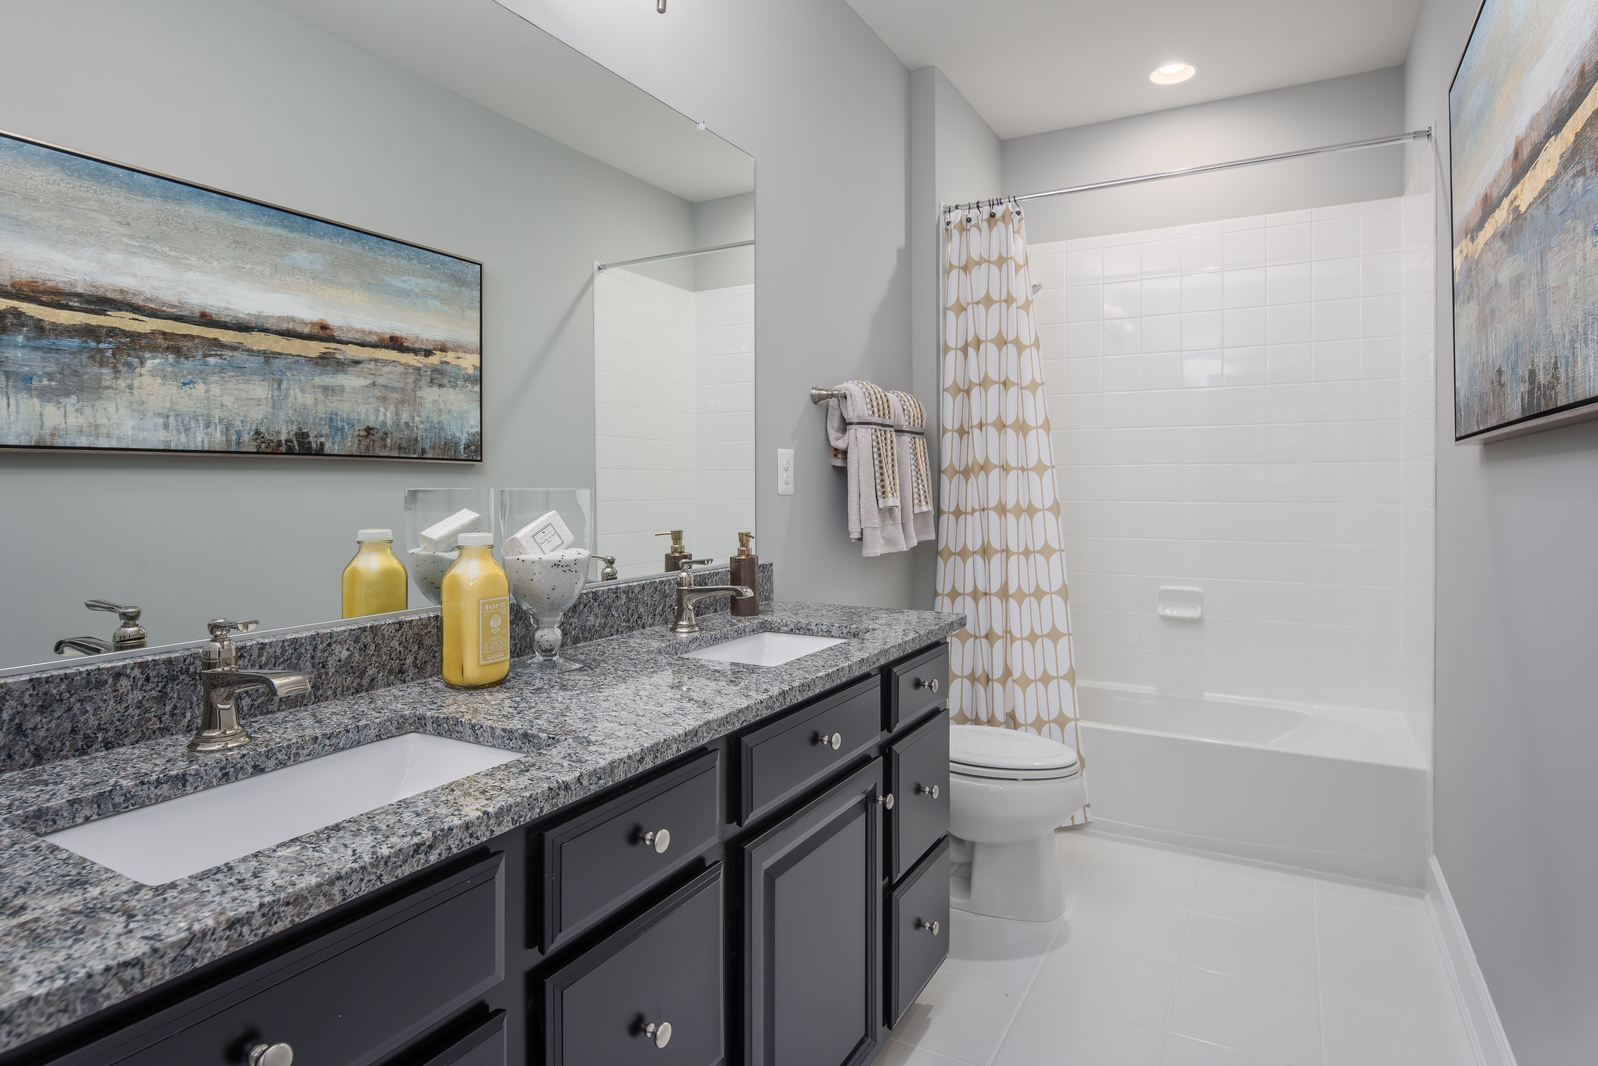 New Monocacy Home Model For Sale | NVHomes on